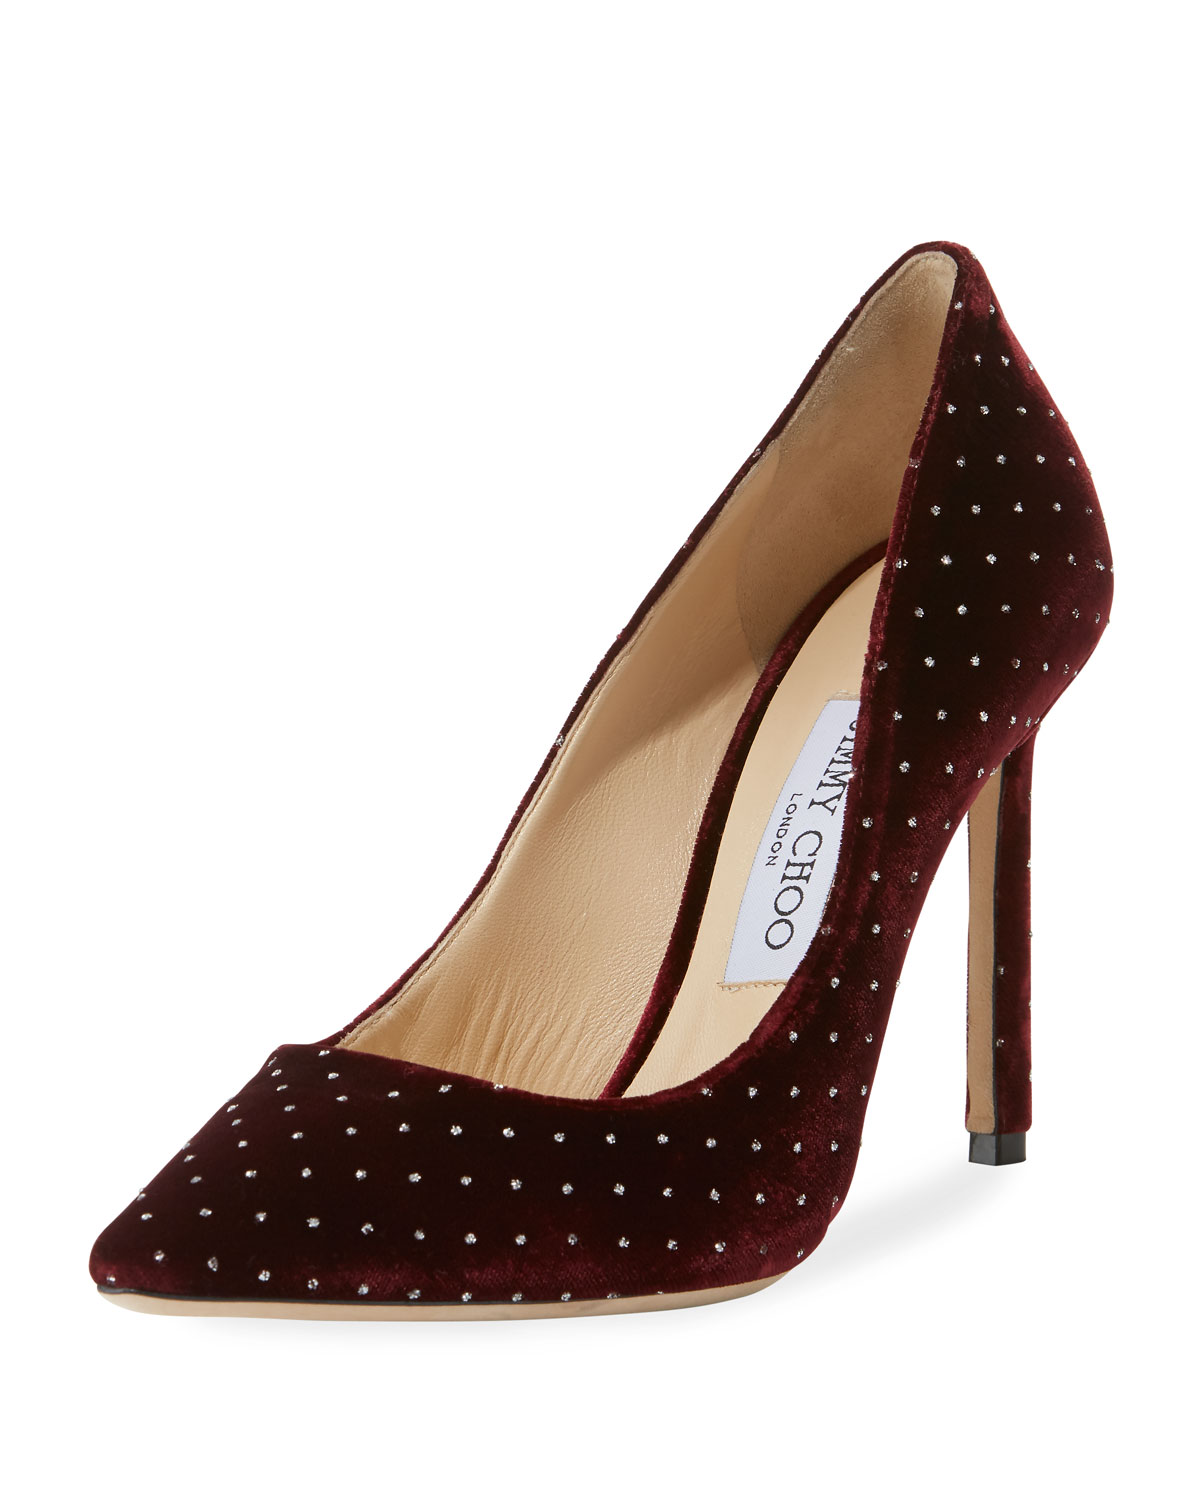 c1bb7ddcdad8 Jimmy Choo Romy 100mm Glitter Spotted Velvet Pumps